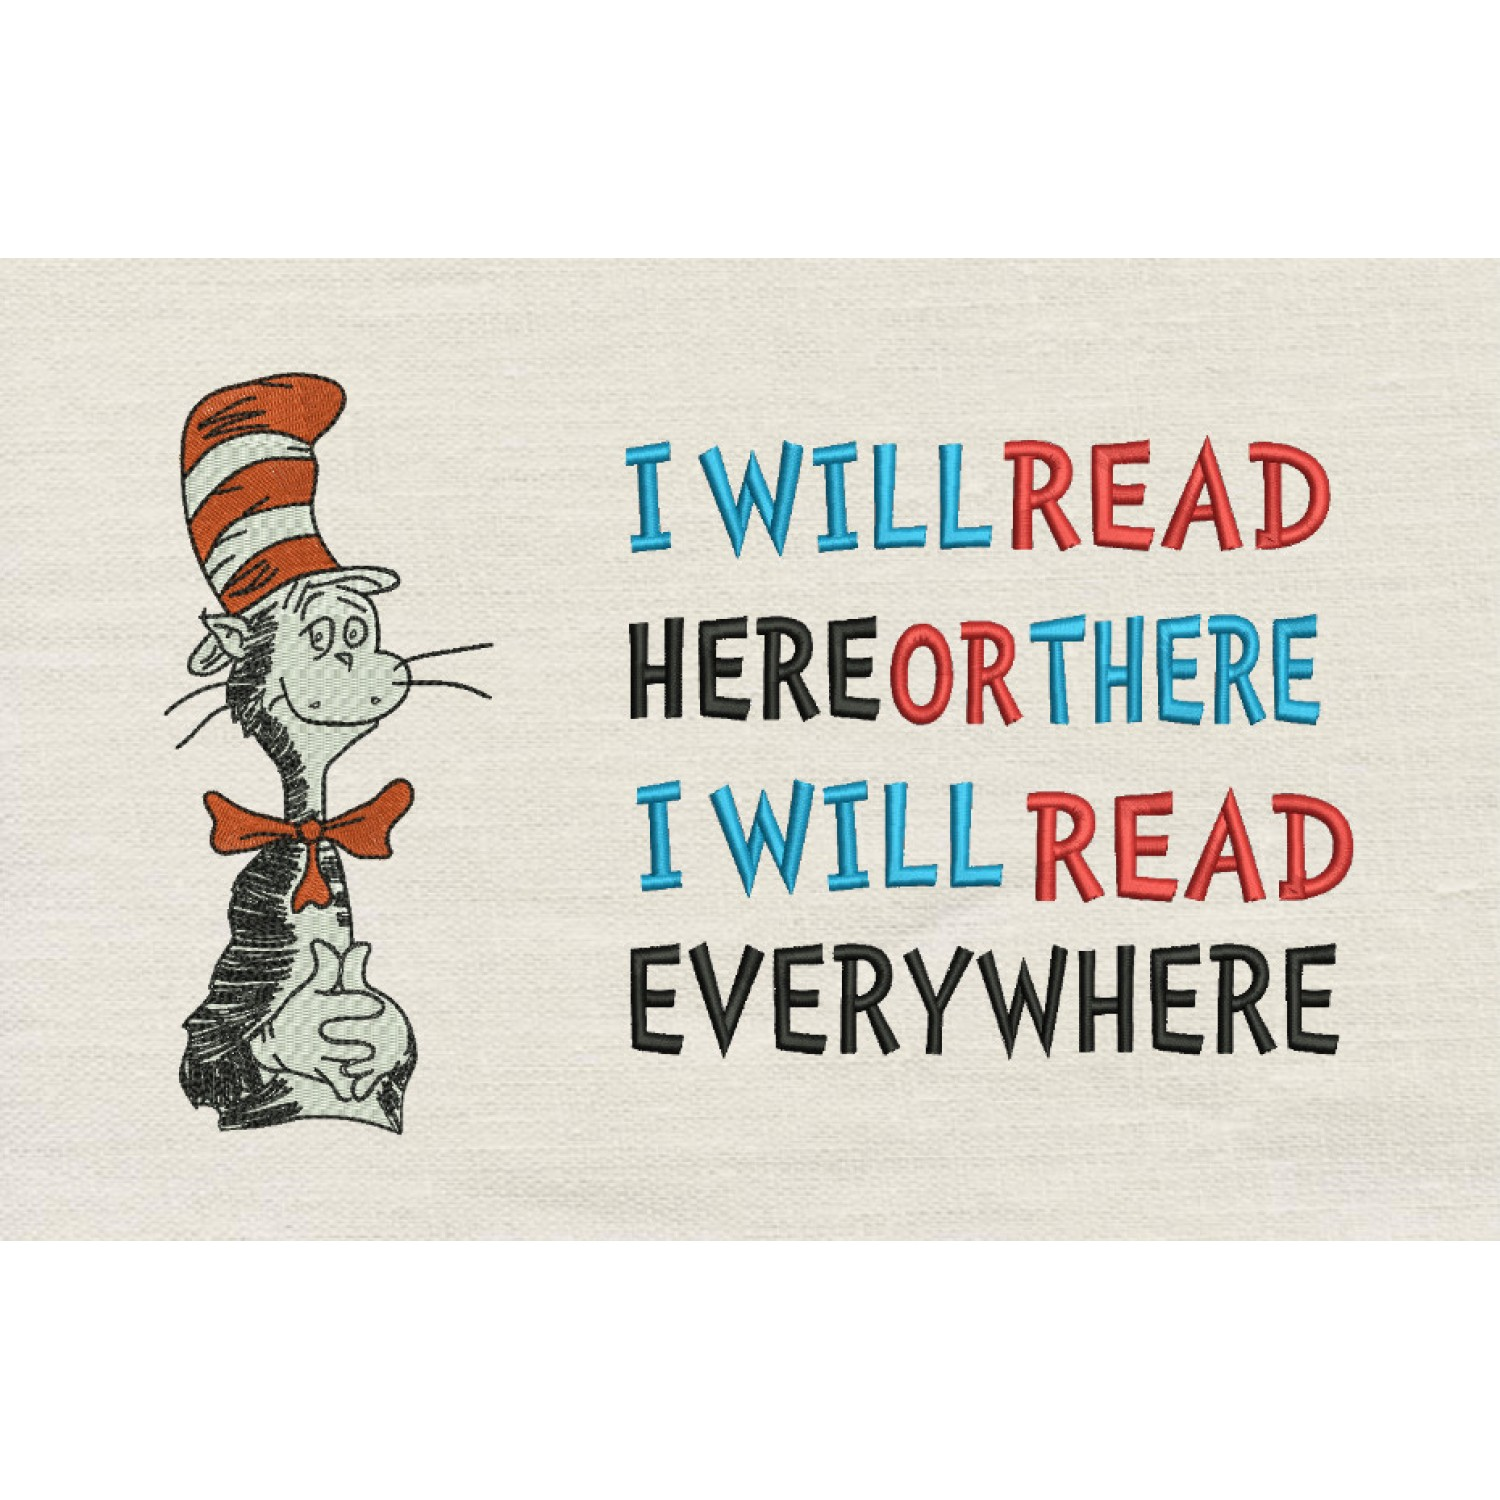 Dr. Seuss stitches with i will read